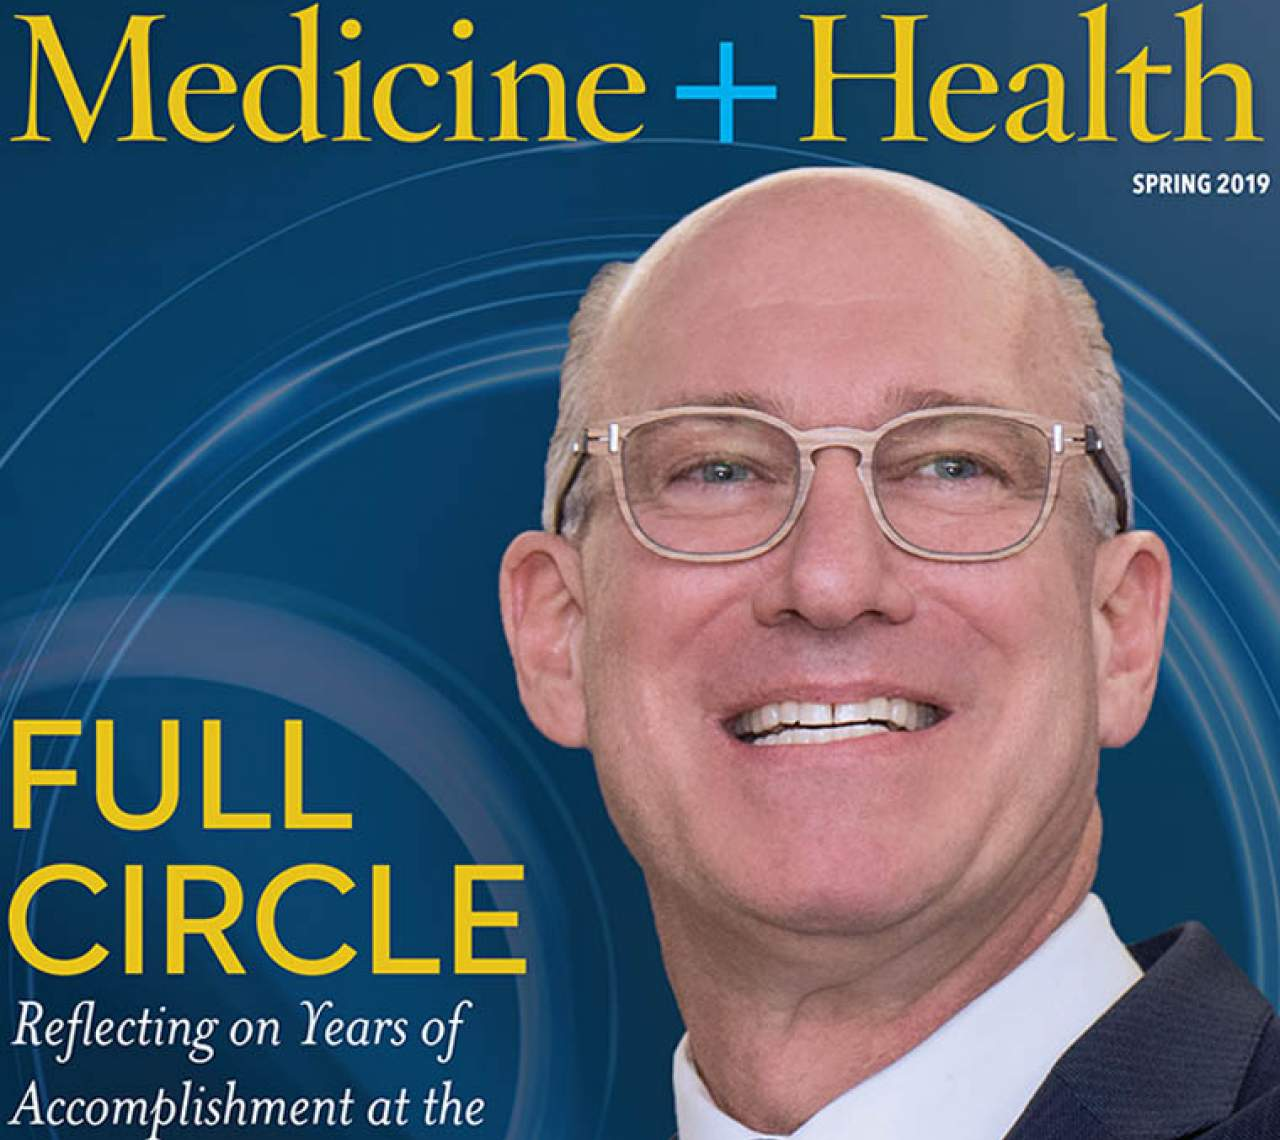 Medicine and Health Spring 2019 cover edition